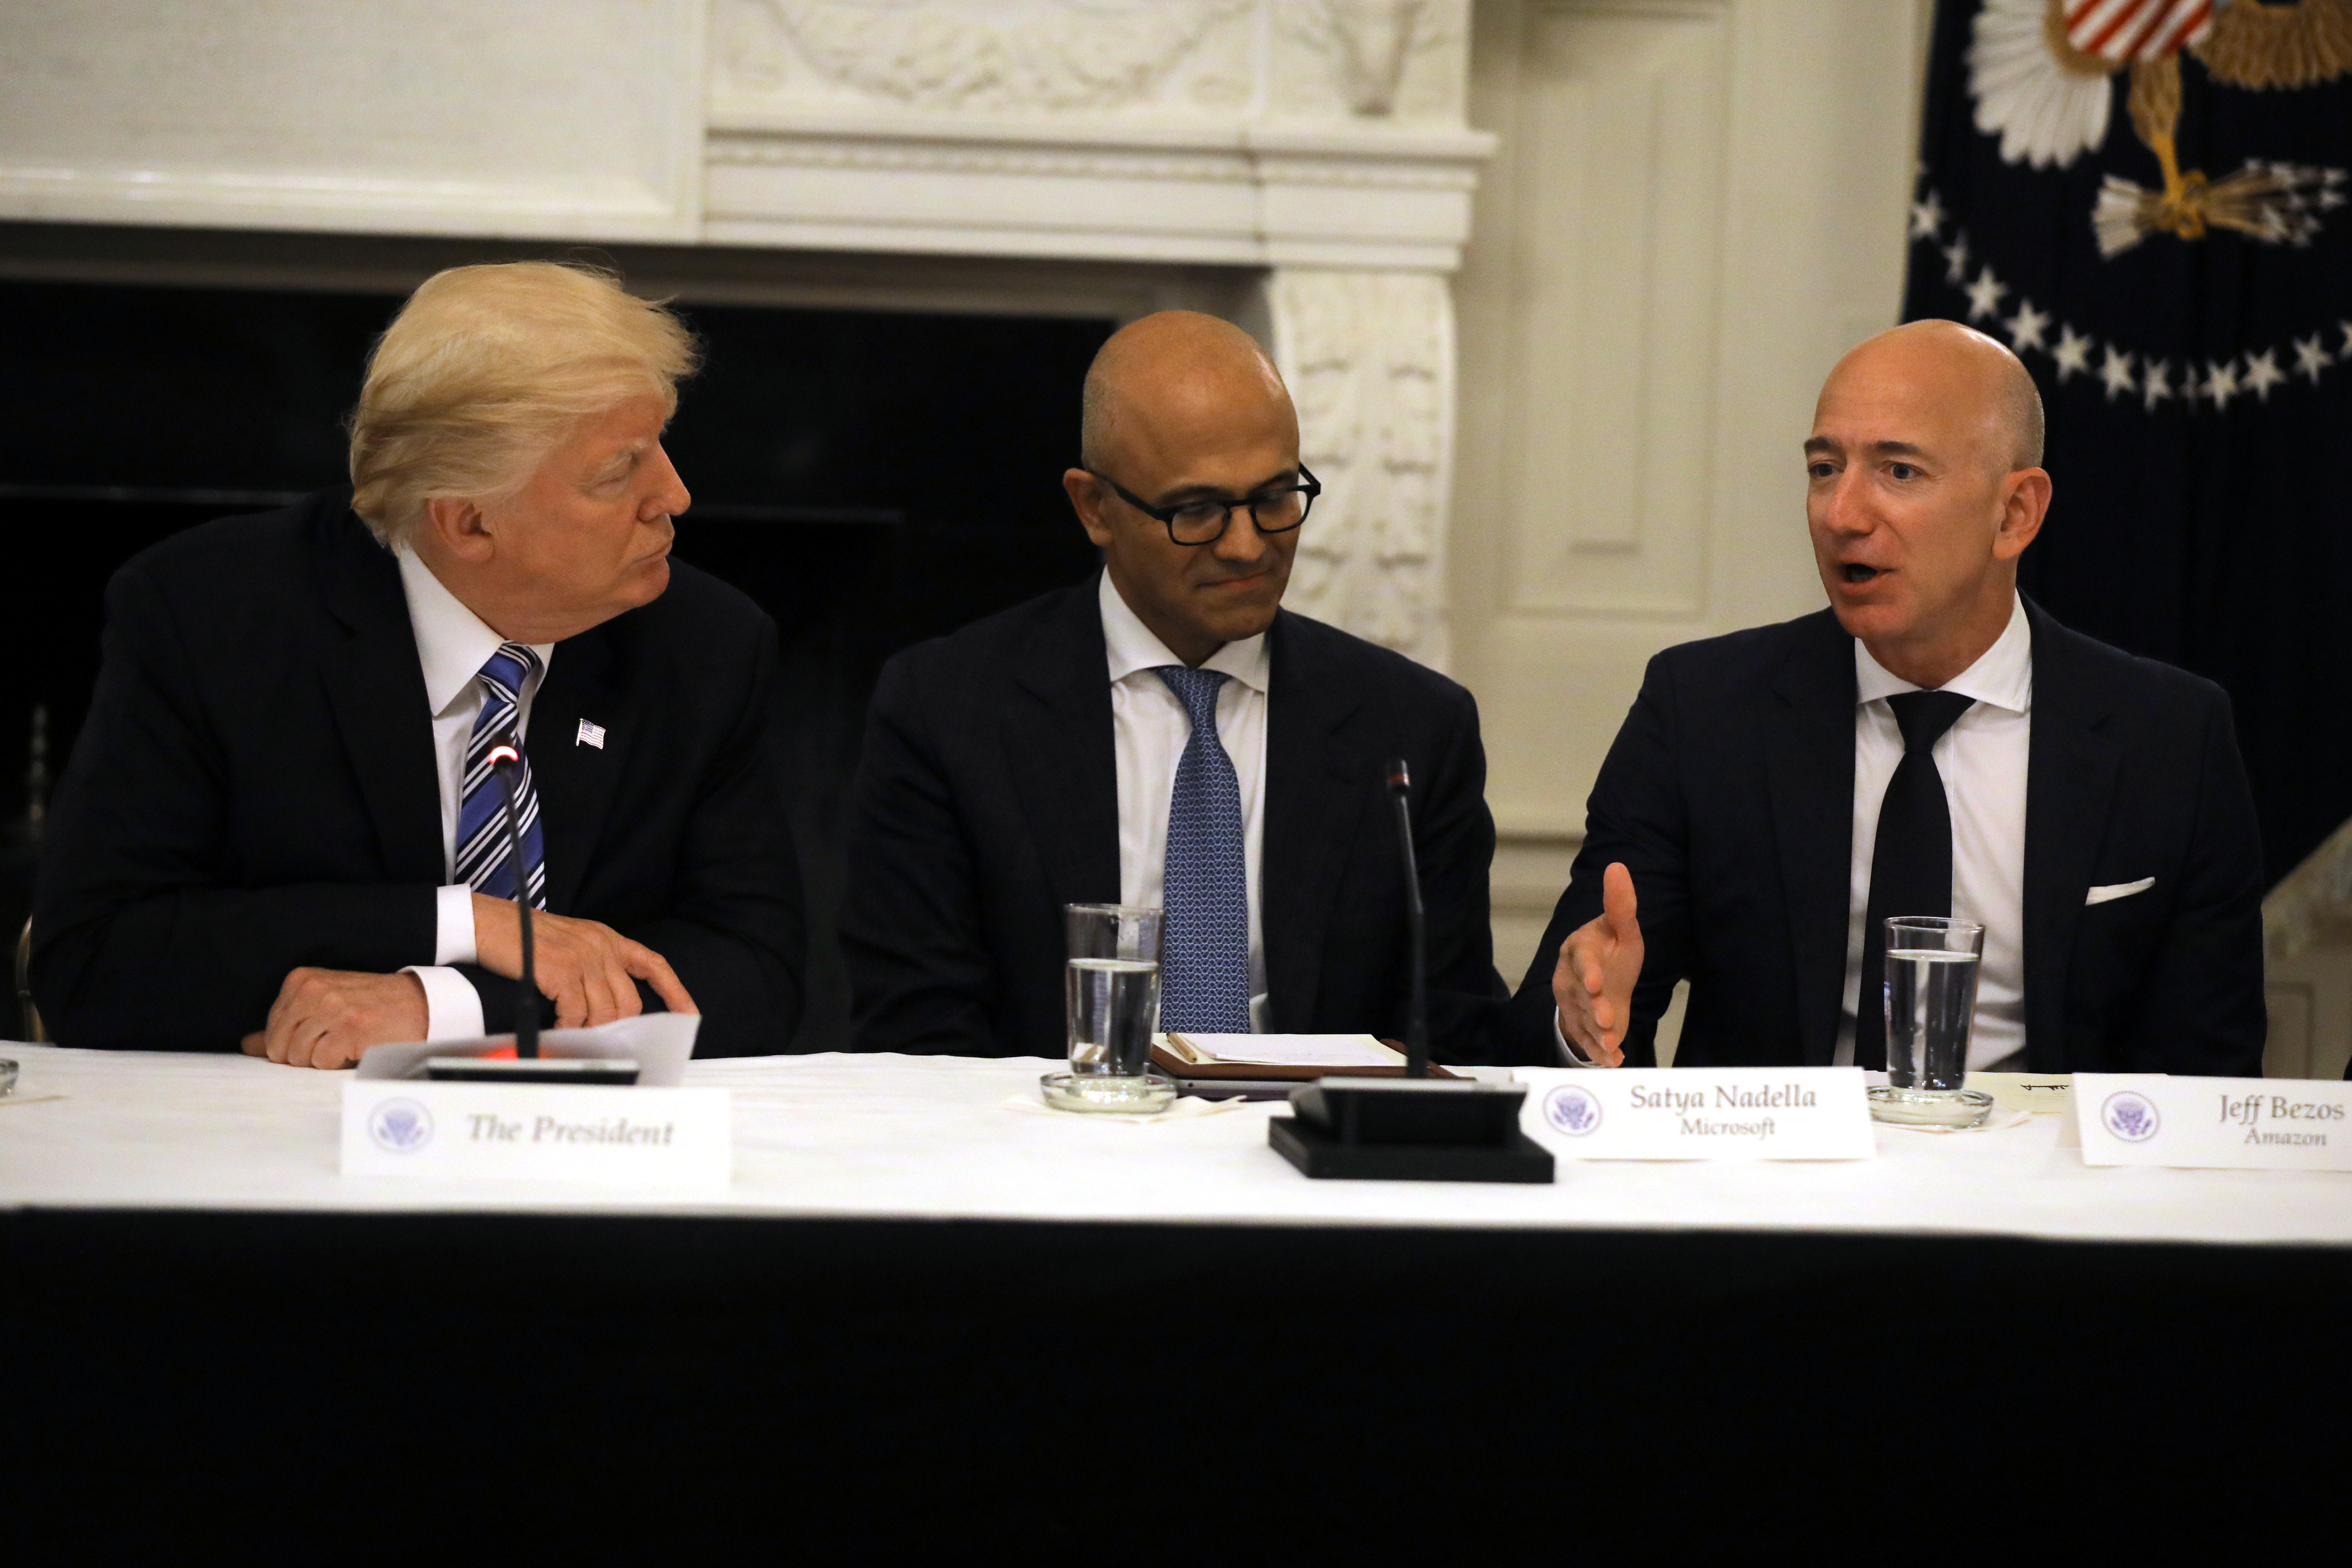 File photo: U.S. President Donald Trump and  Satya Nadella, CEO of Microsoft Corporation listen as Jeff Bezos, CEO of Amazon speaks during an American Technology Council roundtable at the White House in Washington, U.S., June 19, 2017. REUTERS/Carlos Barria